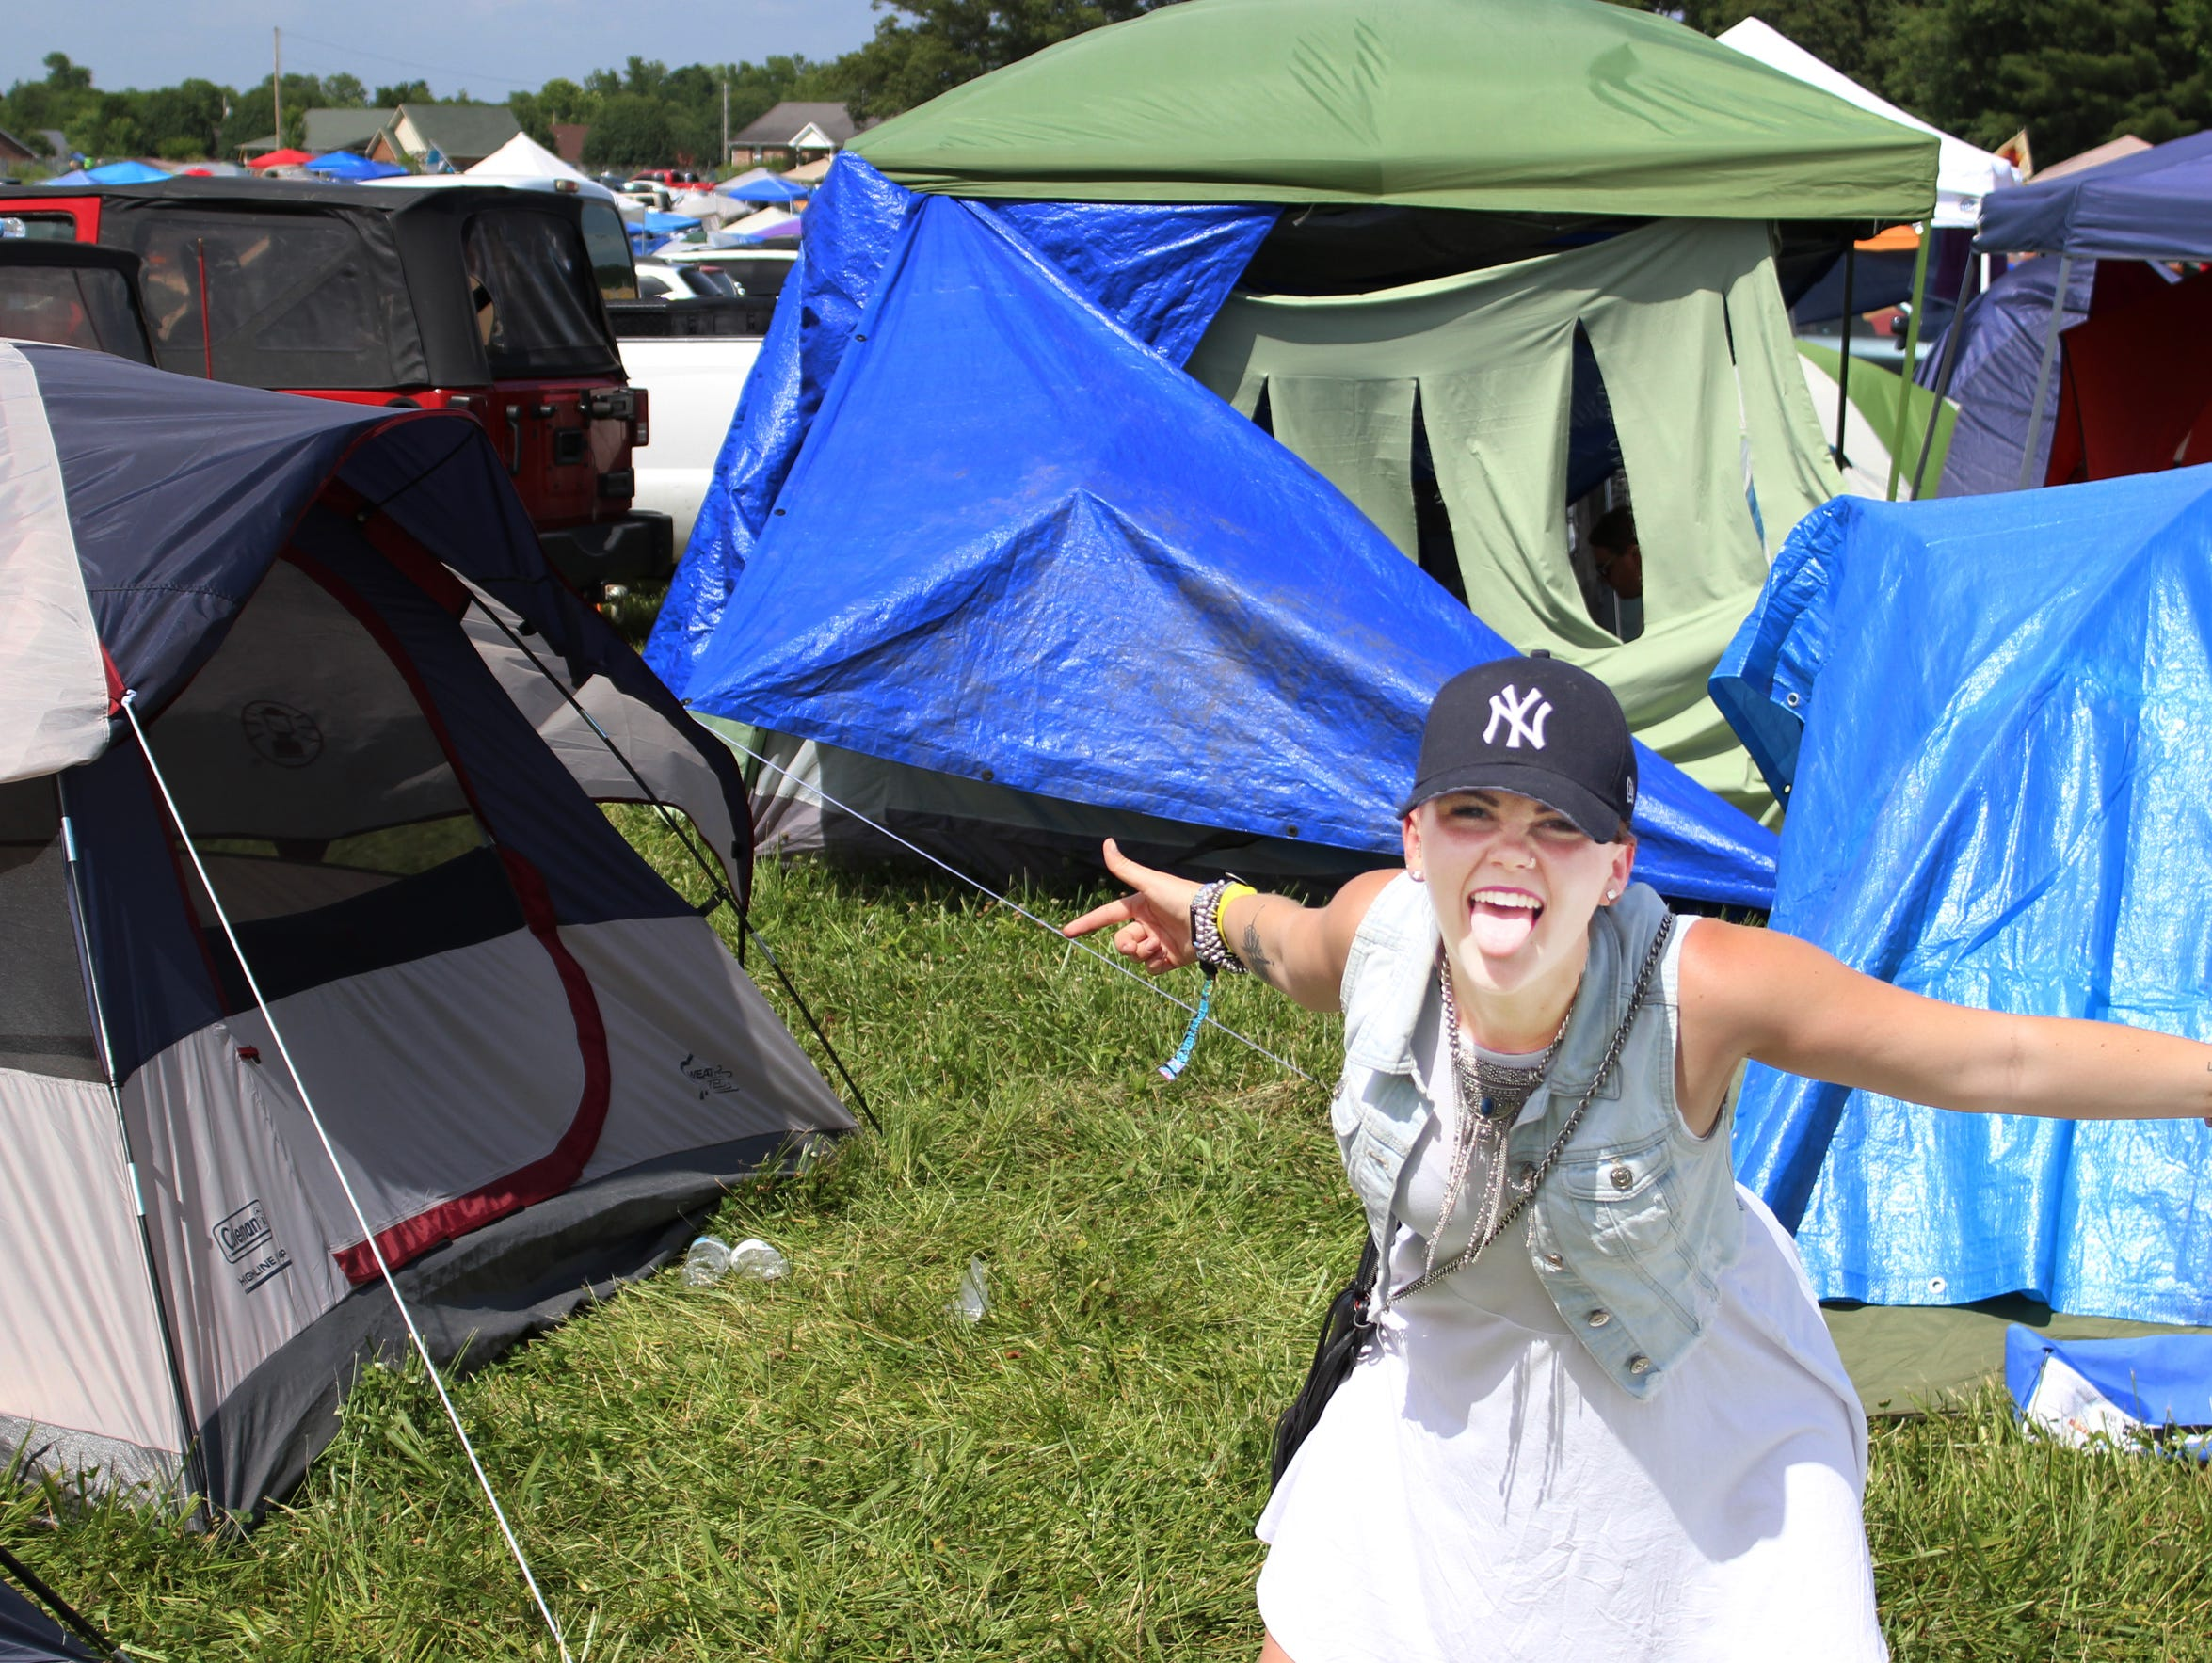 A Bonnaroovian poses at a campsite.